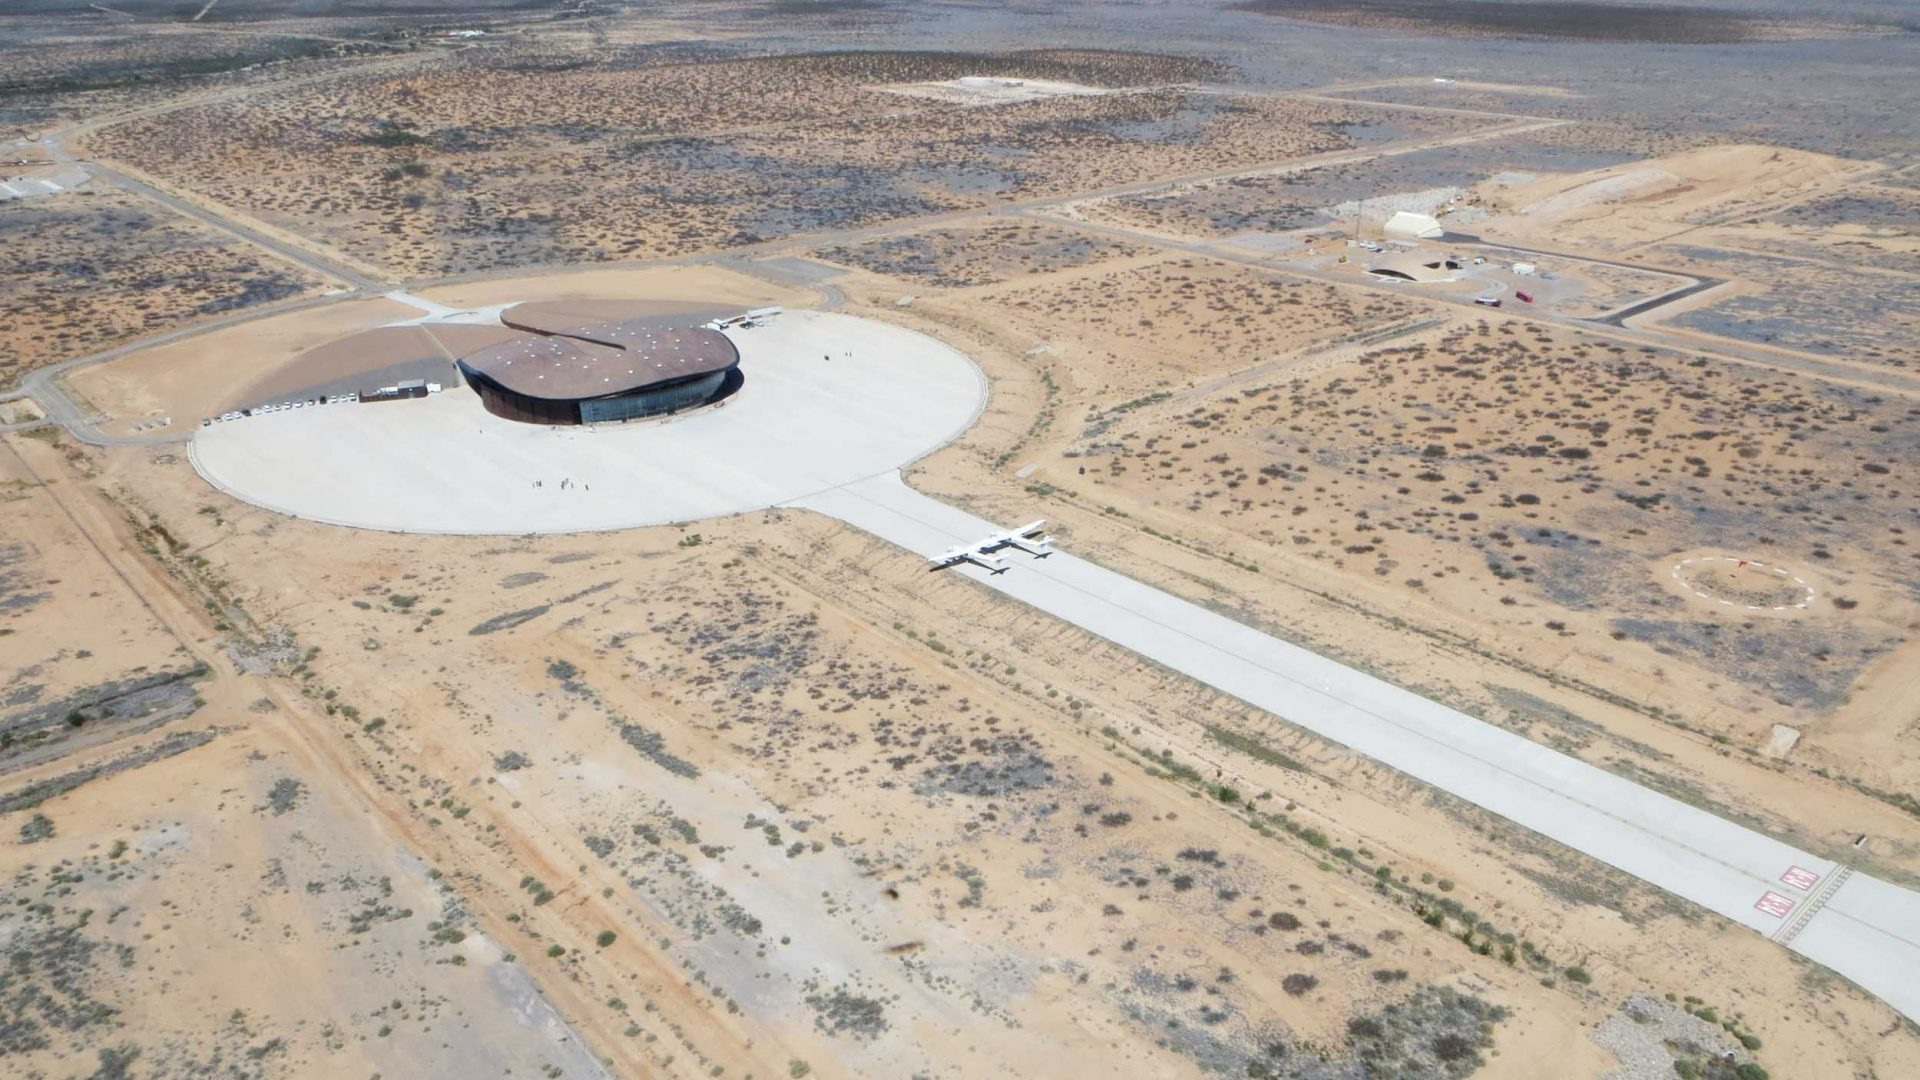 Aerial view of Virgin Galactic's Spaceport America n 27 square miles of desert landscape in New Mexico, Spaceport America, their human spaceflight HQ and center of flight operations.